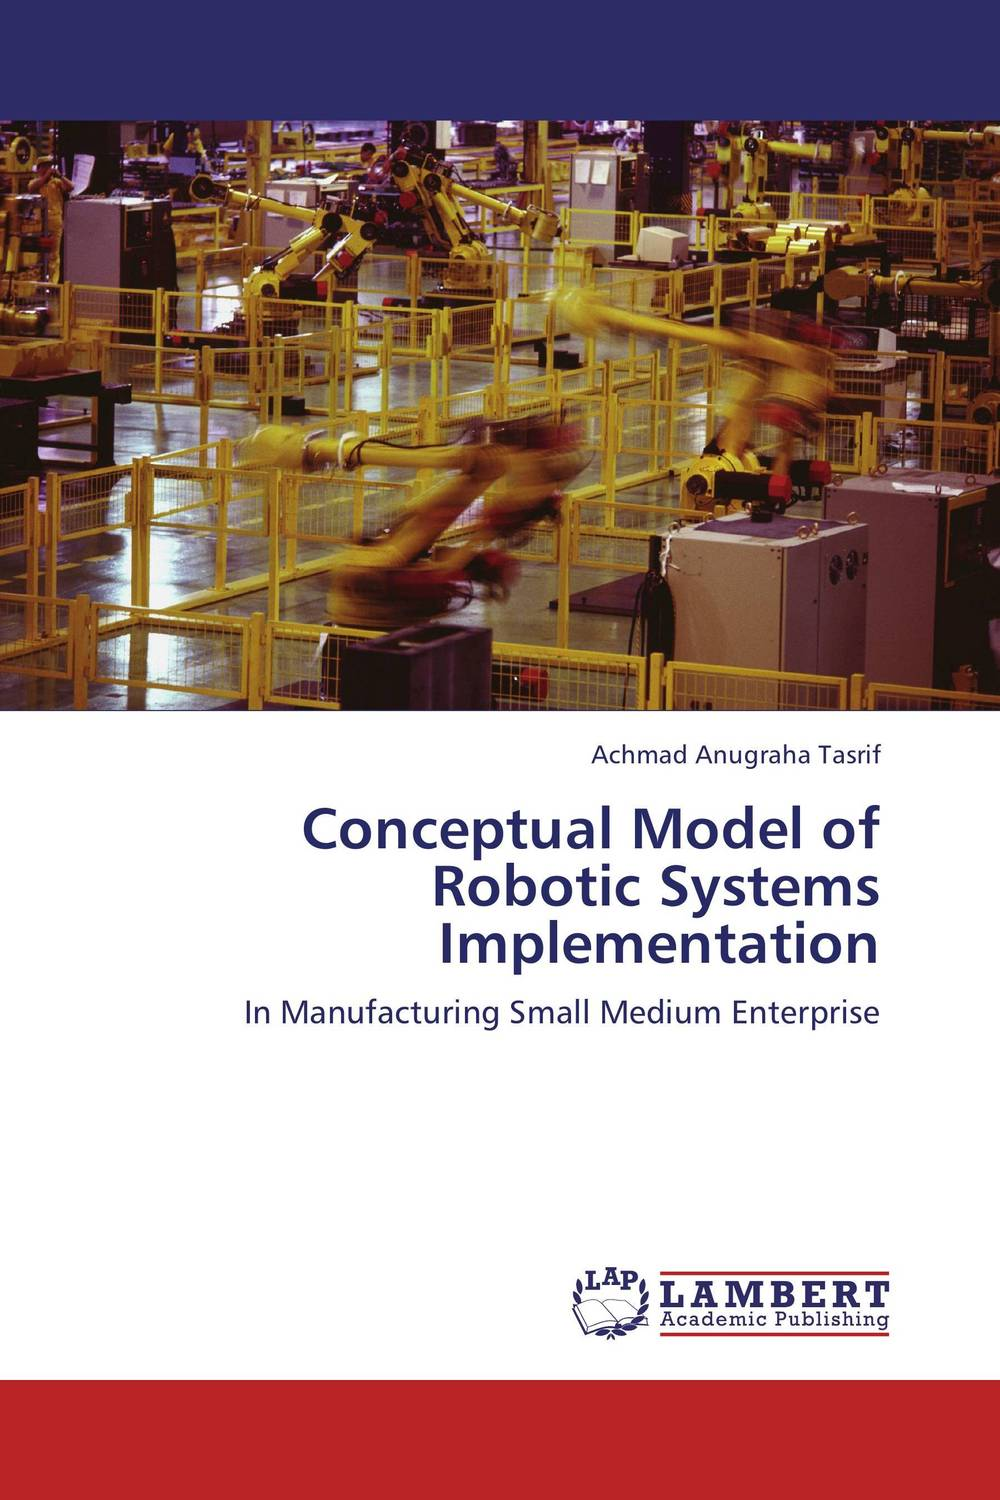 Conceptual Model of Robotic Systems Implementation peter stone layered learning in multiagent systems – a winning approach to robotic soccer